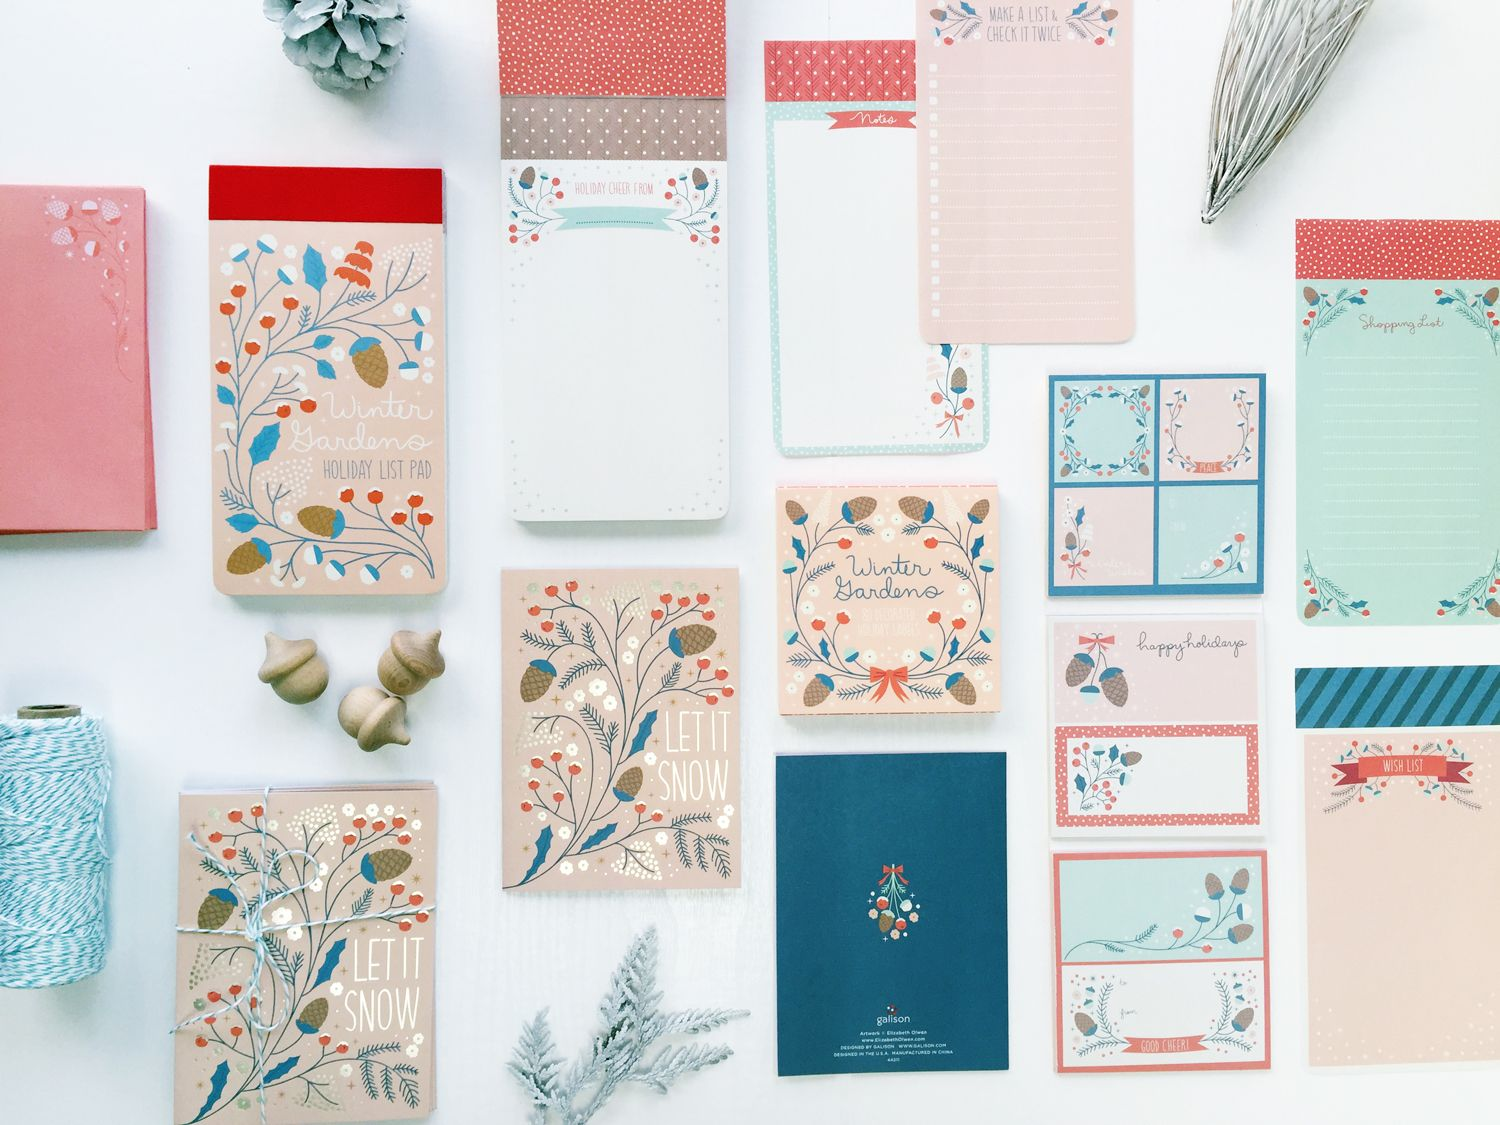 New-York-based Galison creates high-quality, design-forward stationery  goods with leading designers and Elizabeth is thrilled to have collaborated  with them on a series of products for Holiday 2015. Pink for holiday? Yes  please!